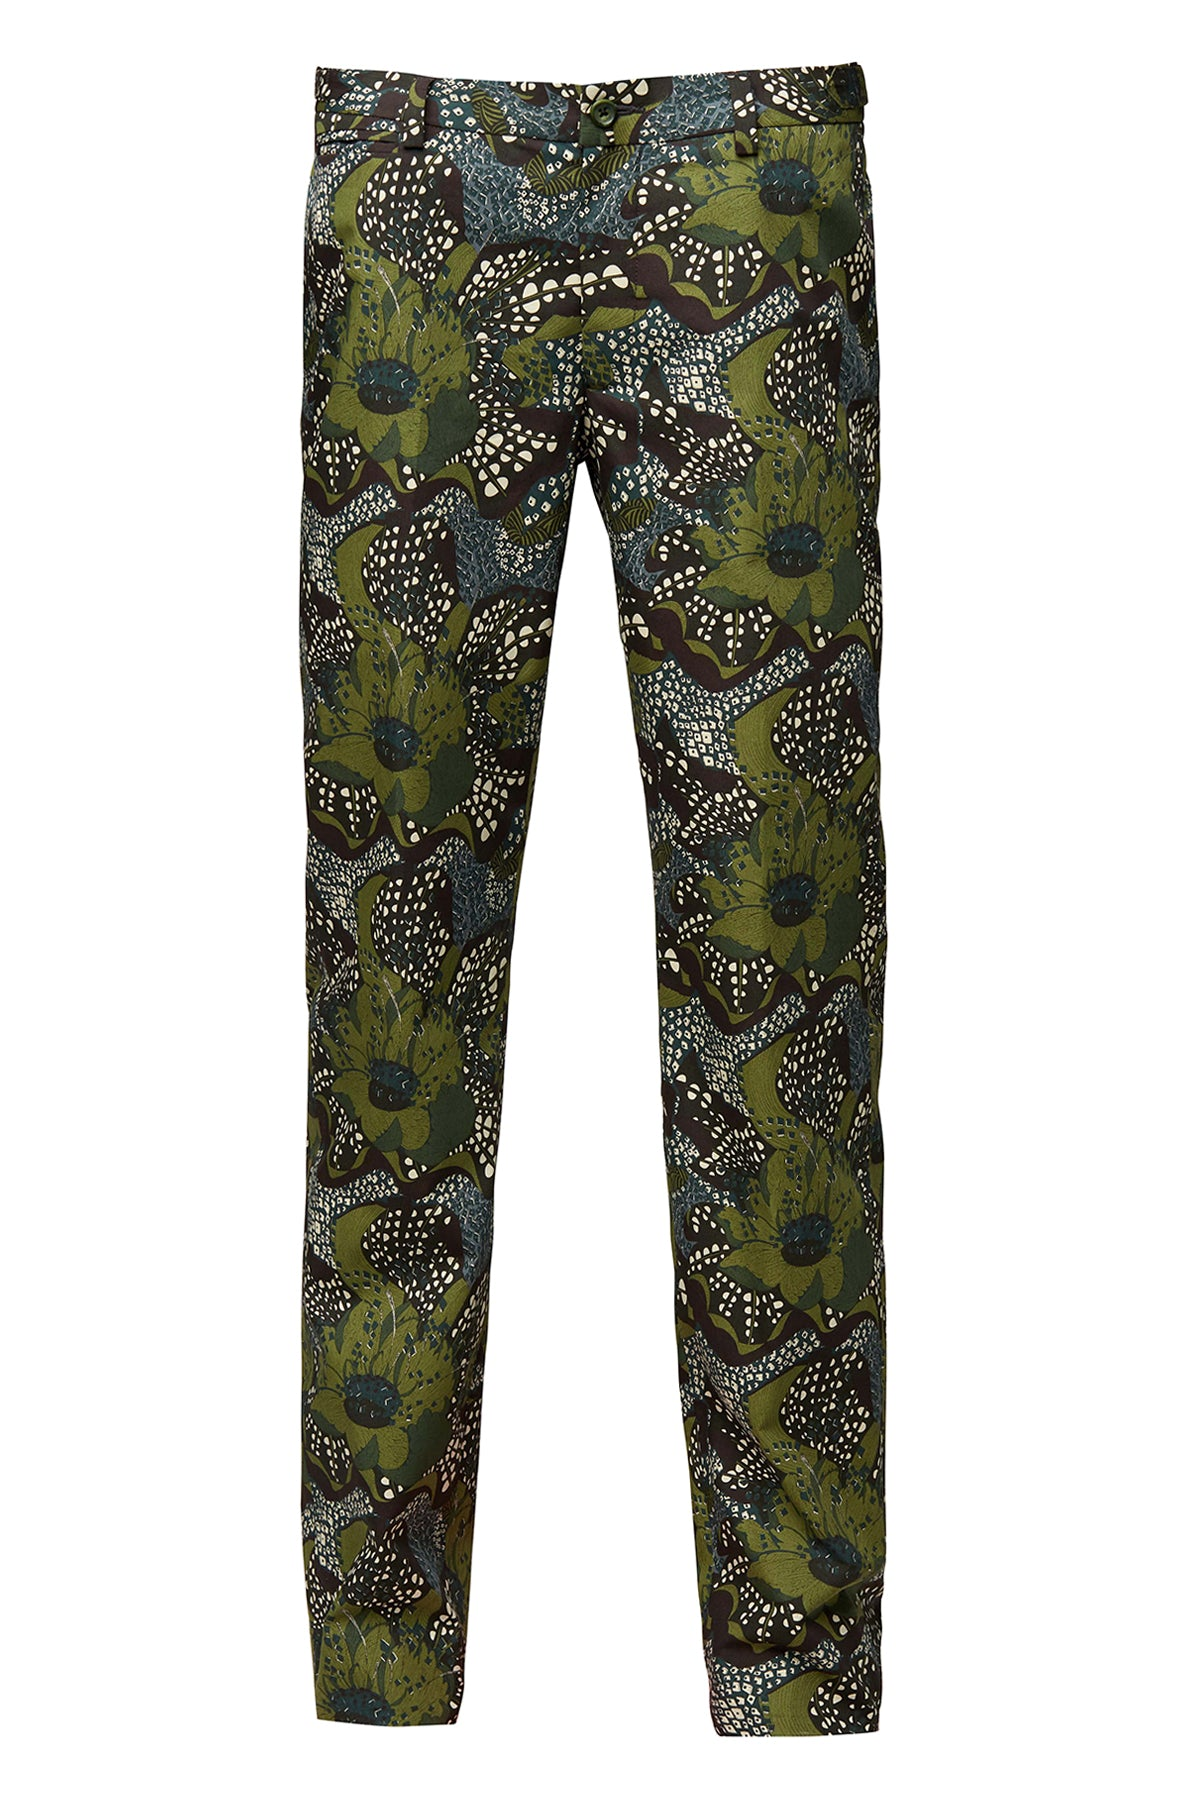 David August Trousers